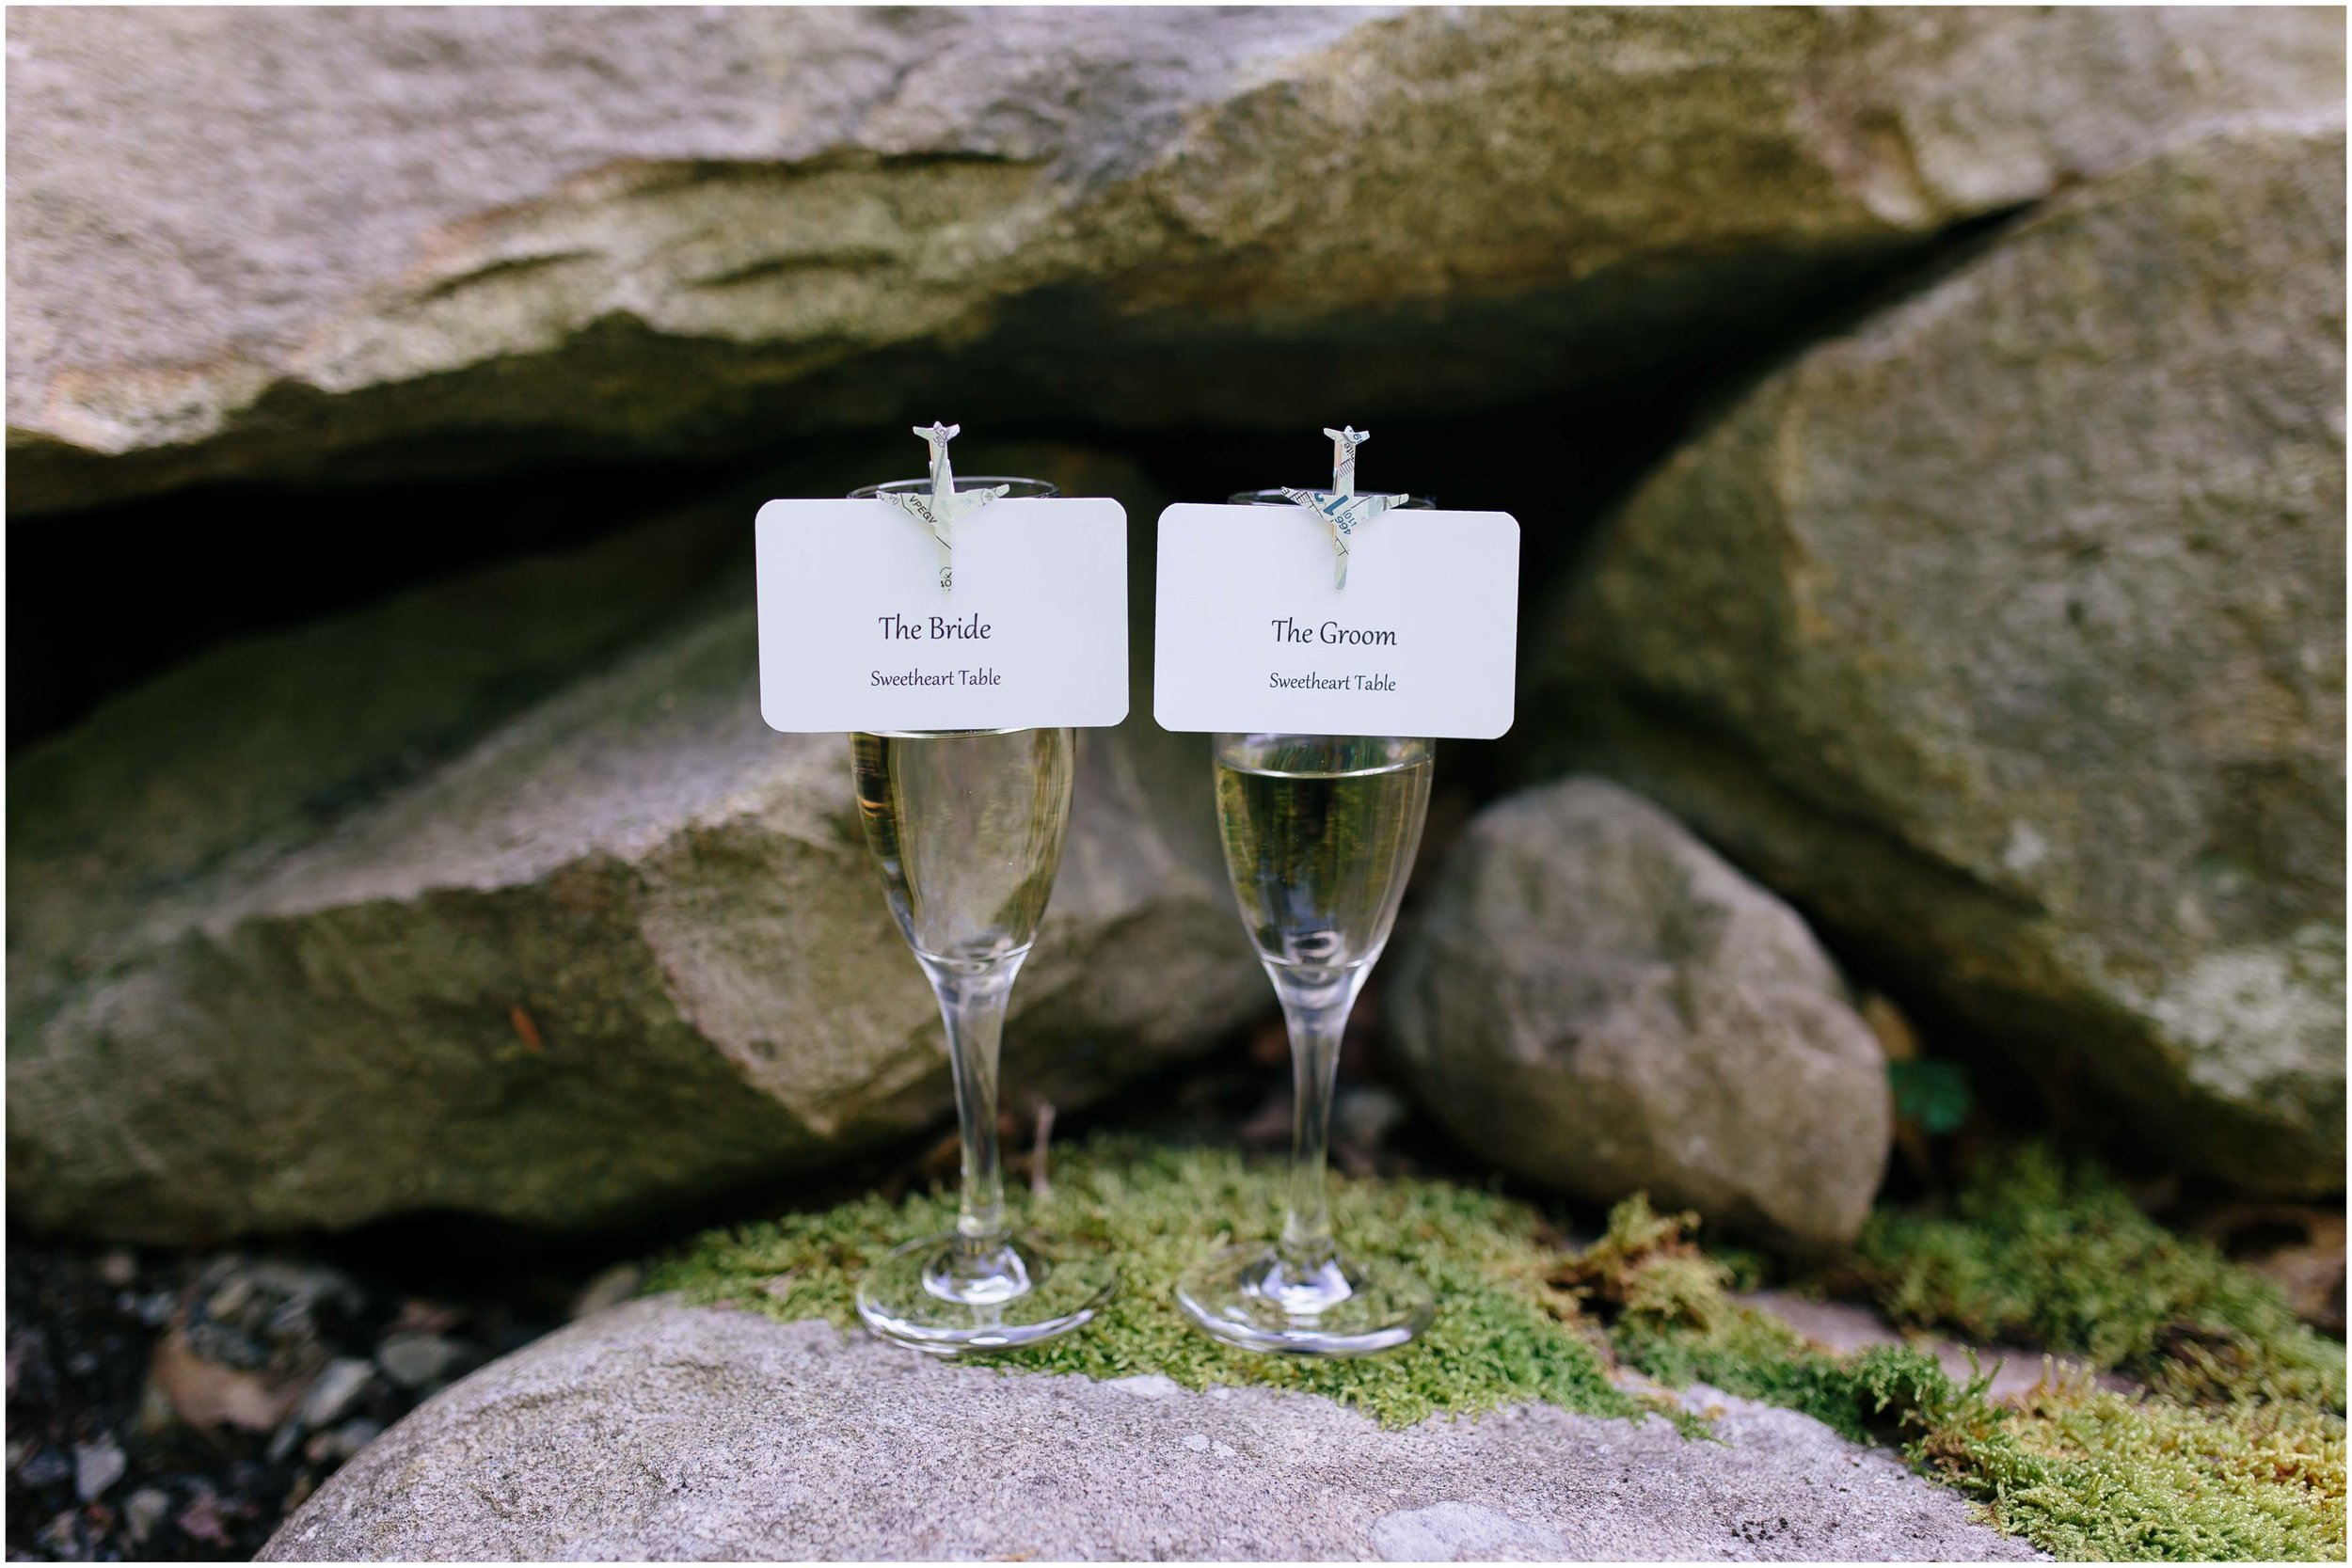 Sunny New Hampshire Summer Wedding at Mile Away Restaurant Milford - champagne flutes for the bride and groom